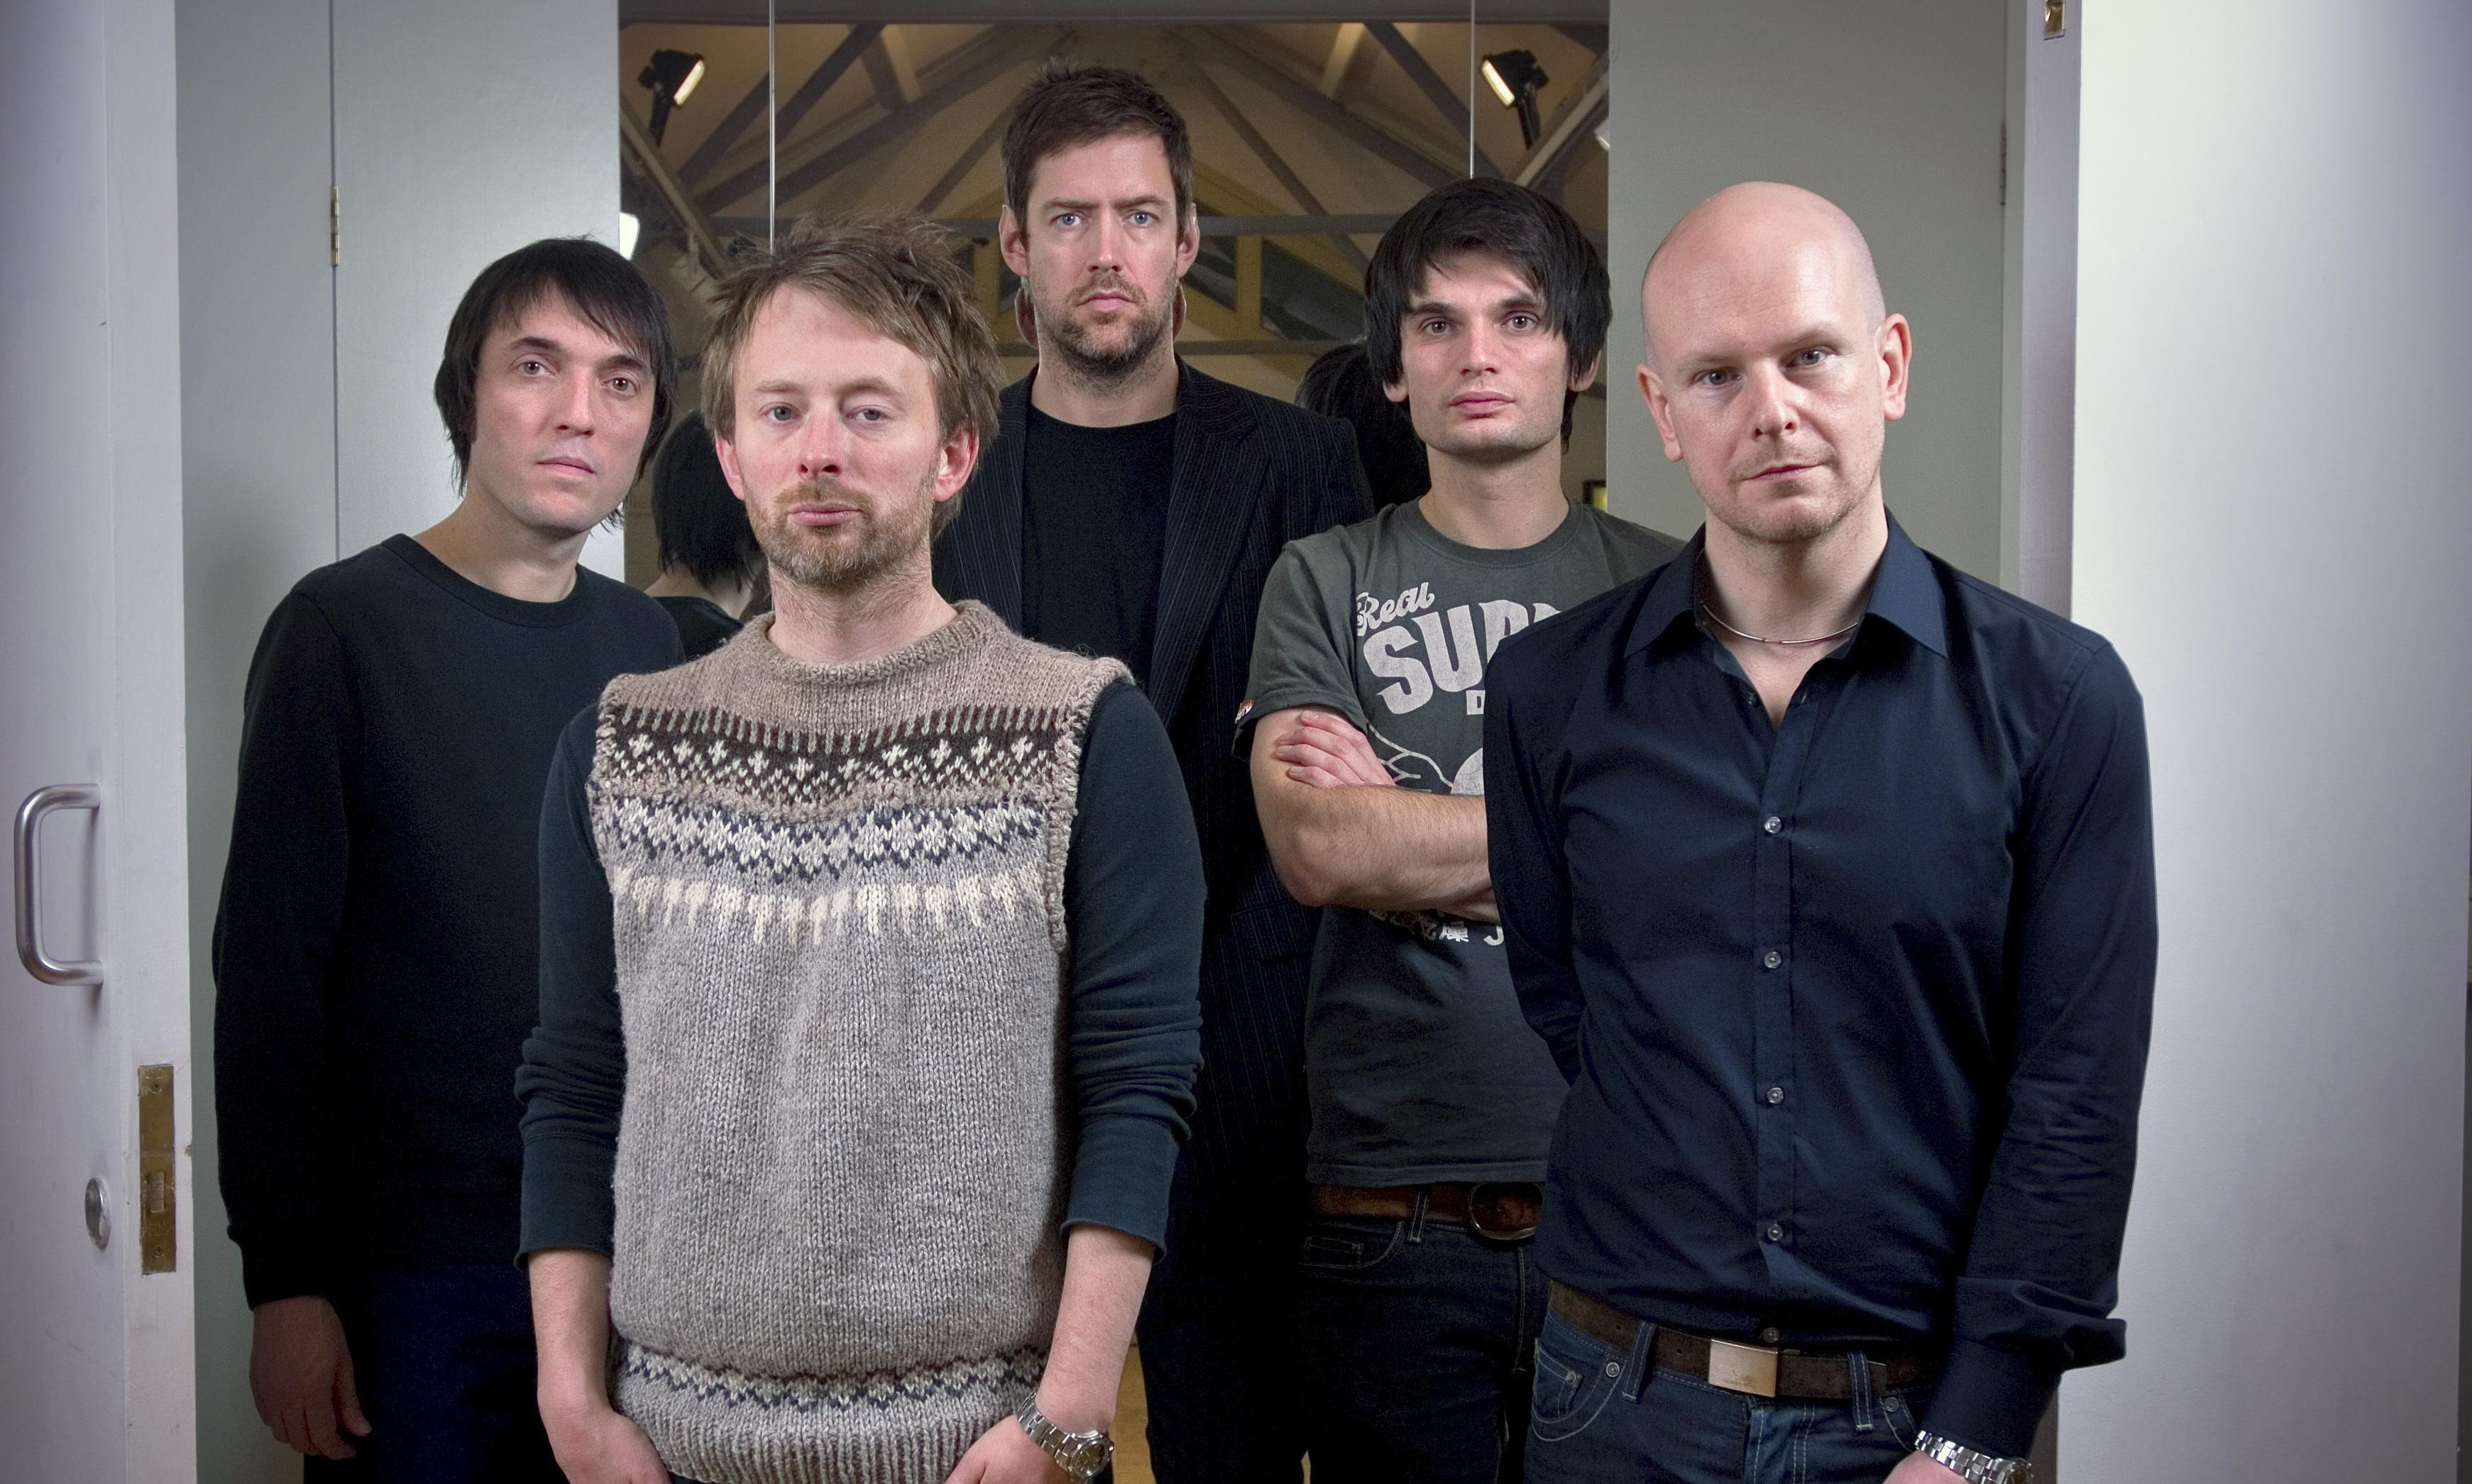 Drone yoga, bowler hats, QI repeats: which Radiohead member are you?